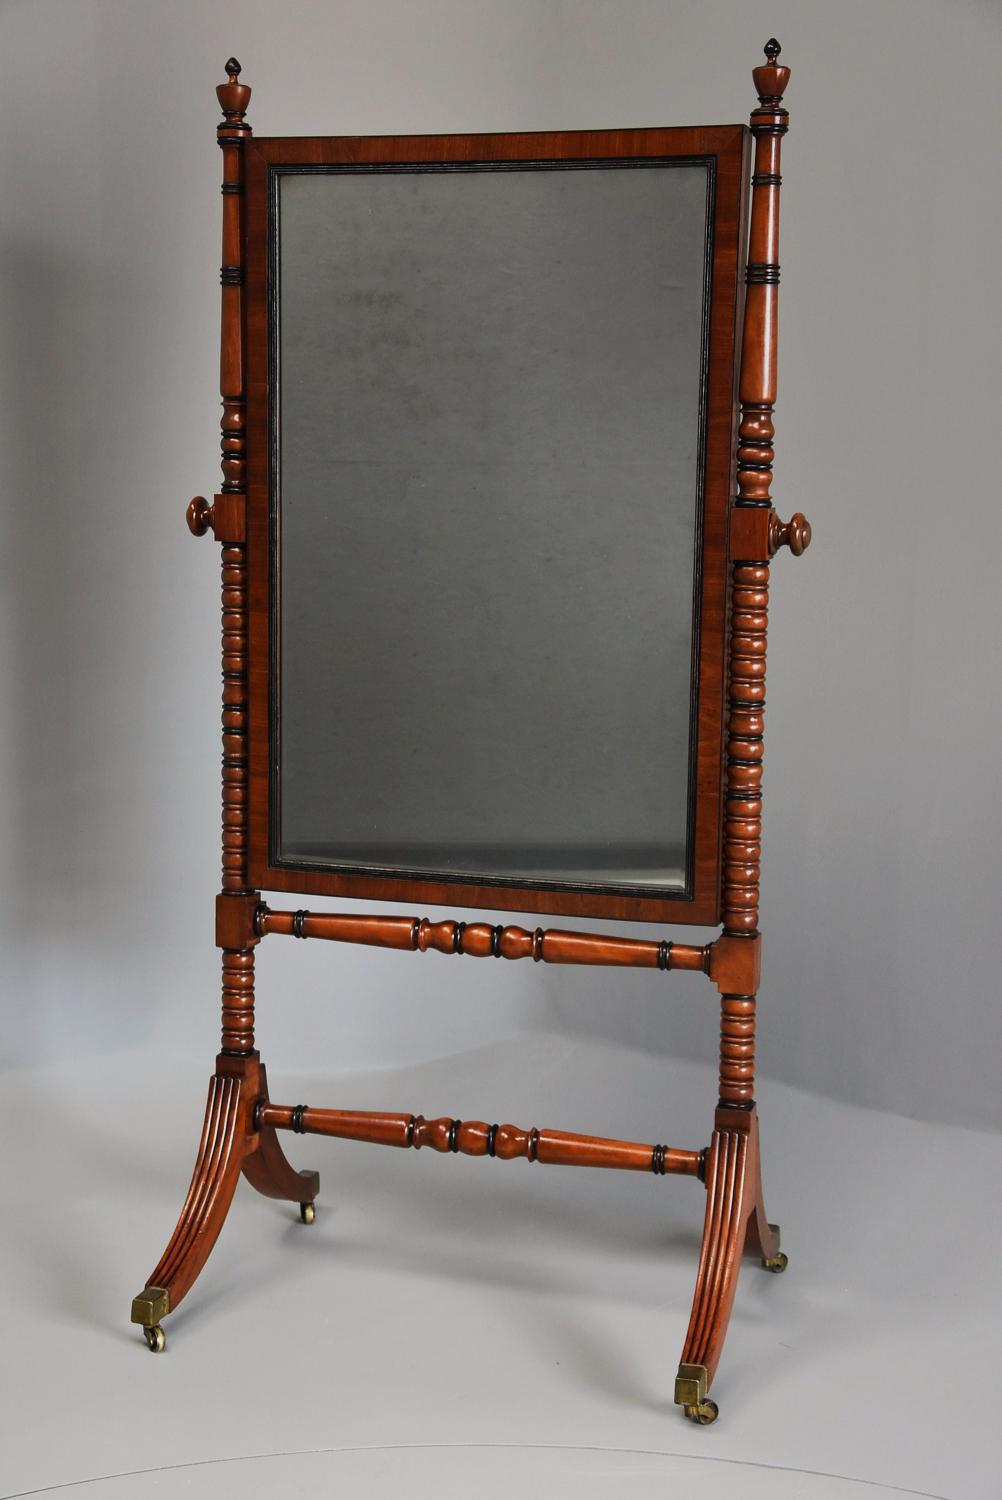 Early 19thc Regency mahogany cheval mirror